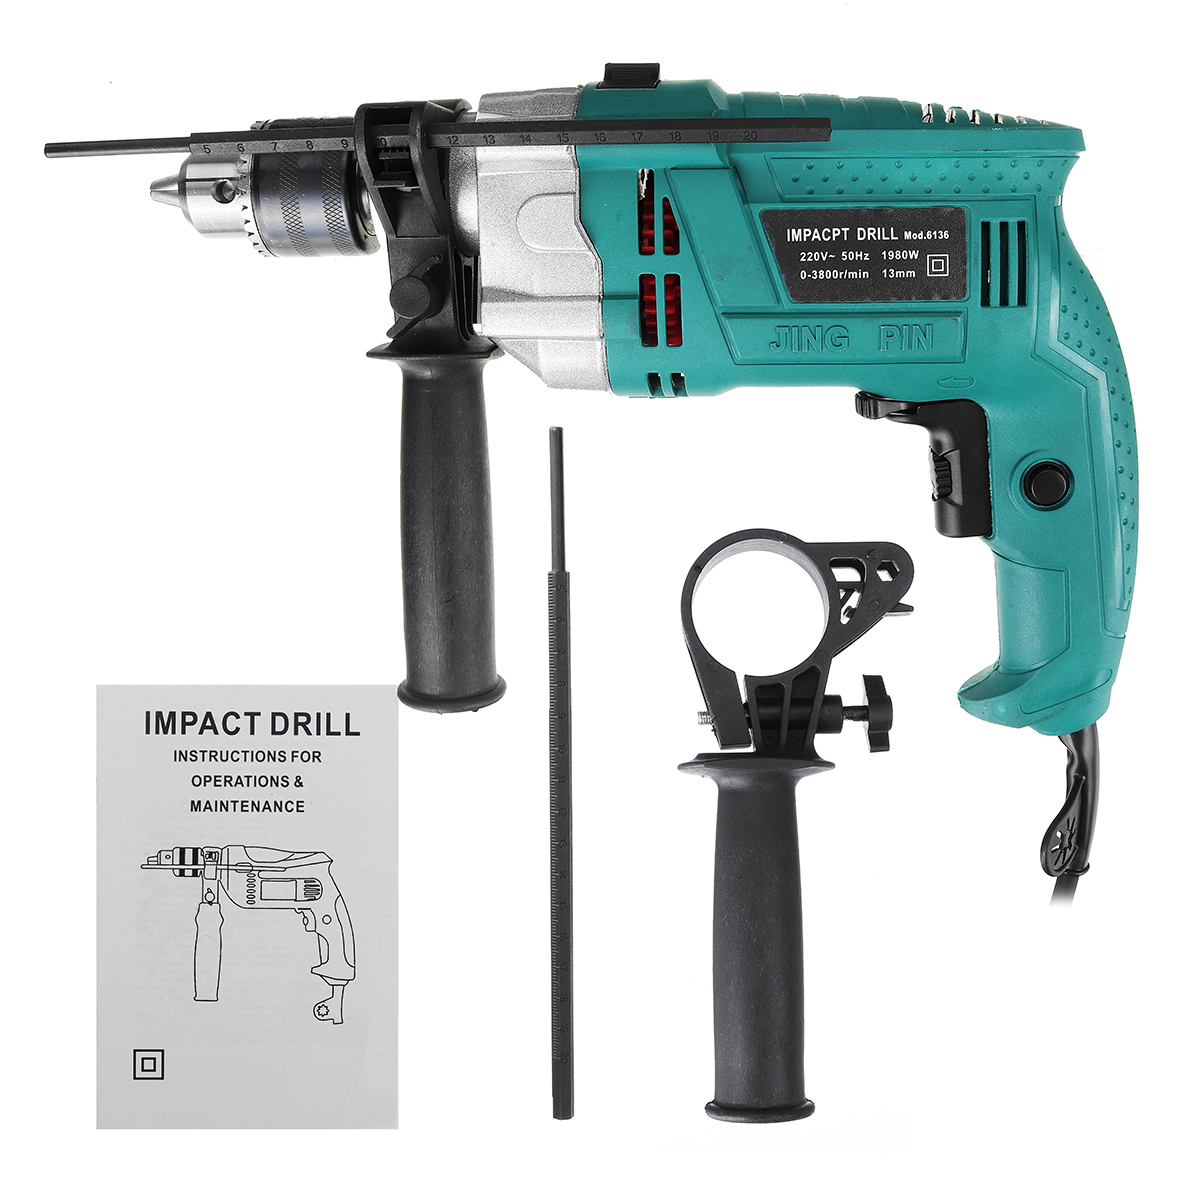 Electric  Scale Hammer 1980W 220V Impact Multifunction Rotary Handle Kit Wrench 3800rpm Handheld Drill  Flat Drill Bar Drillpro